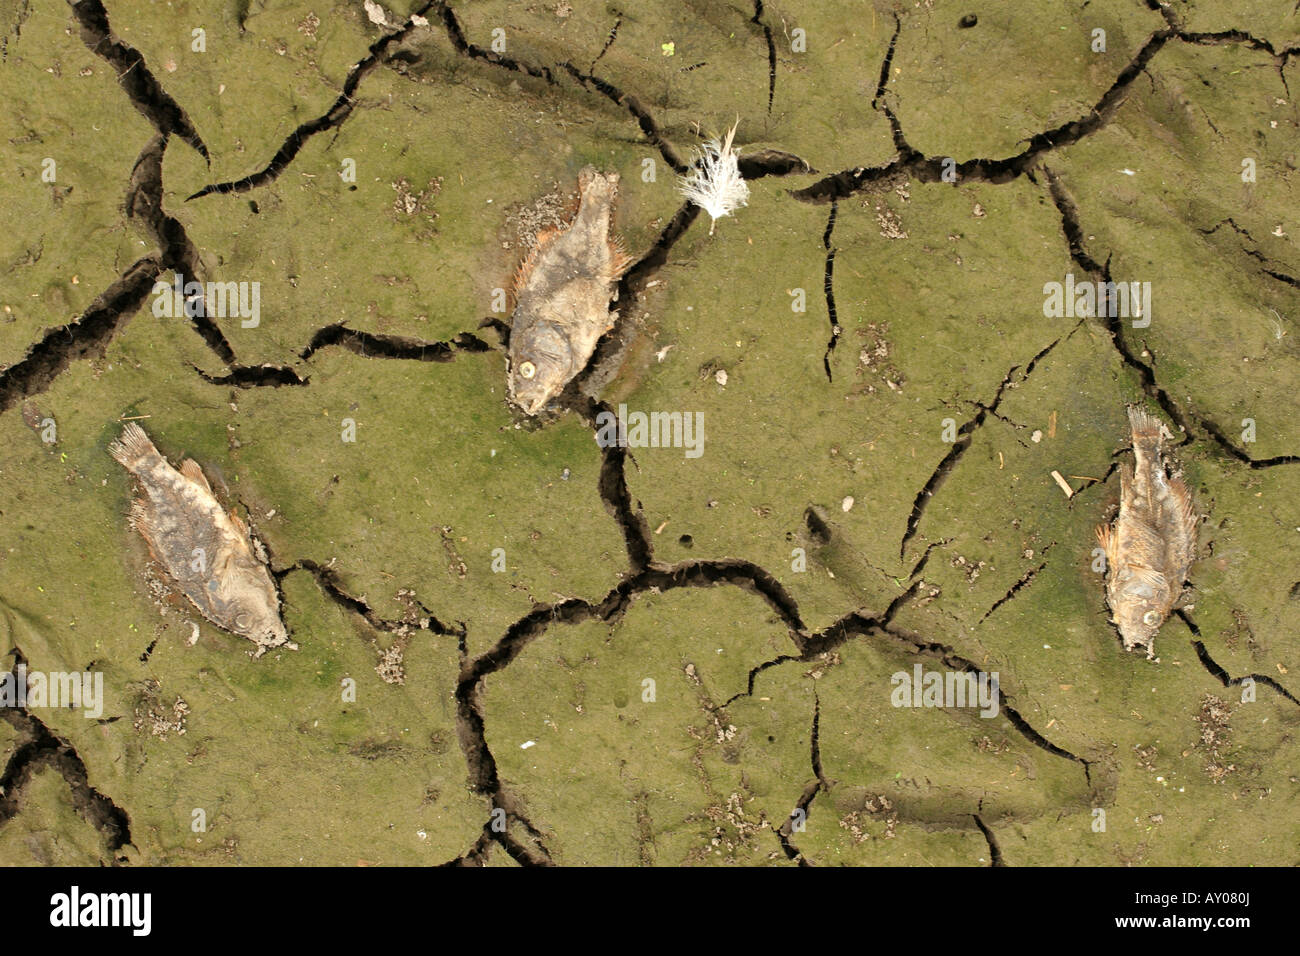 dead fish dried dry pond - Stock Image